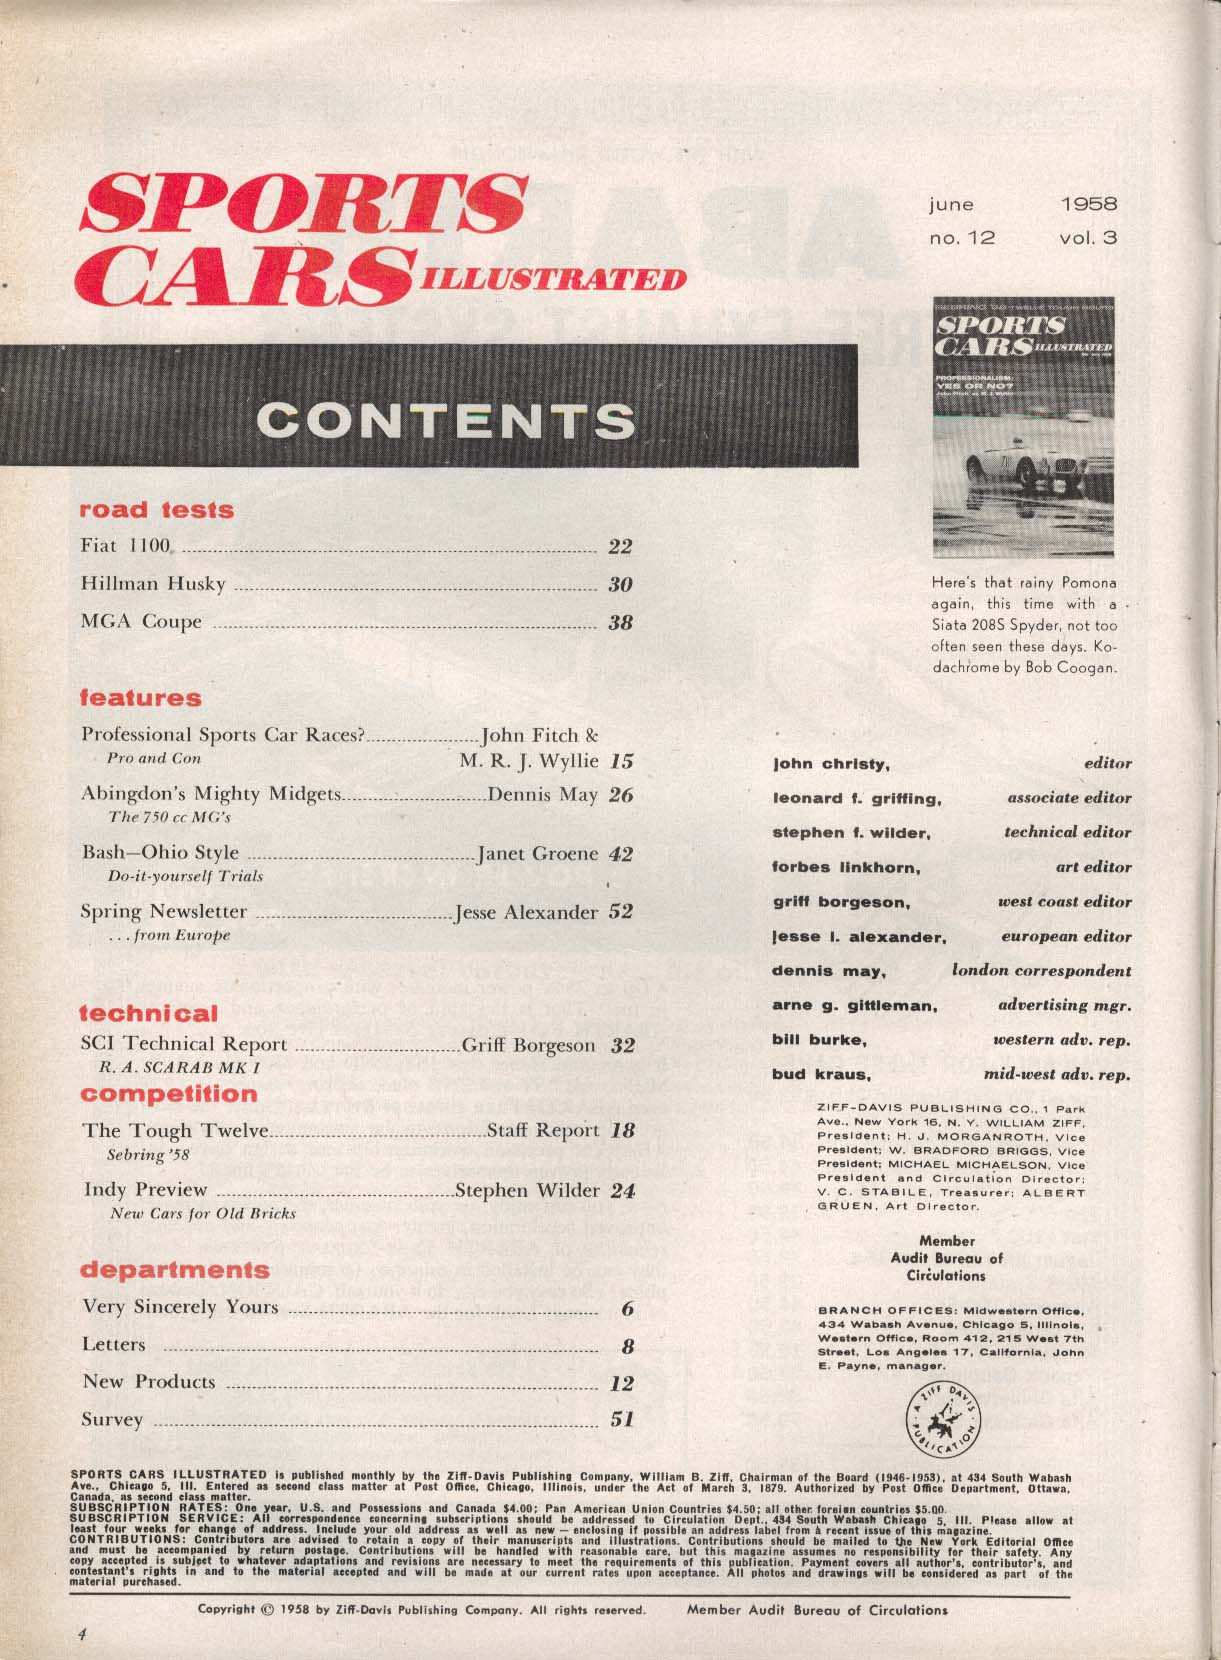 Image for SPORTS CARS ILLUSTRATED Fiat 1100 Hillman Husky MGA Coupe road tests 6 1958